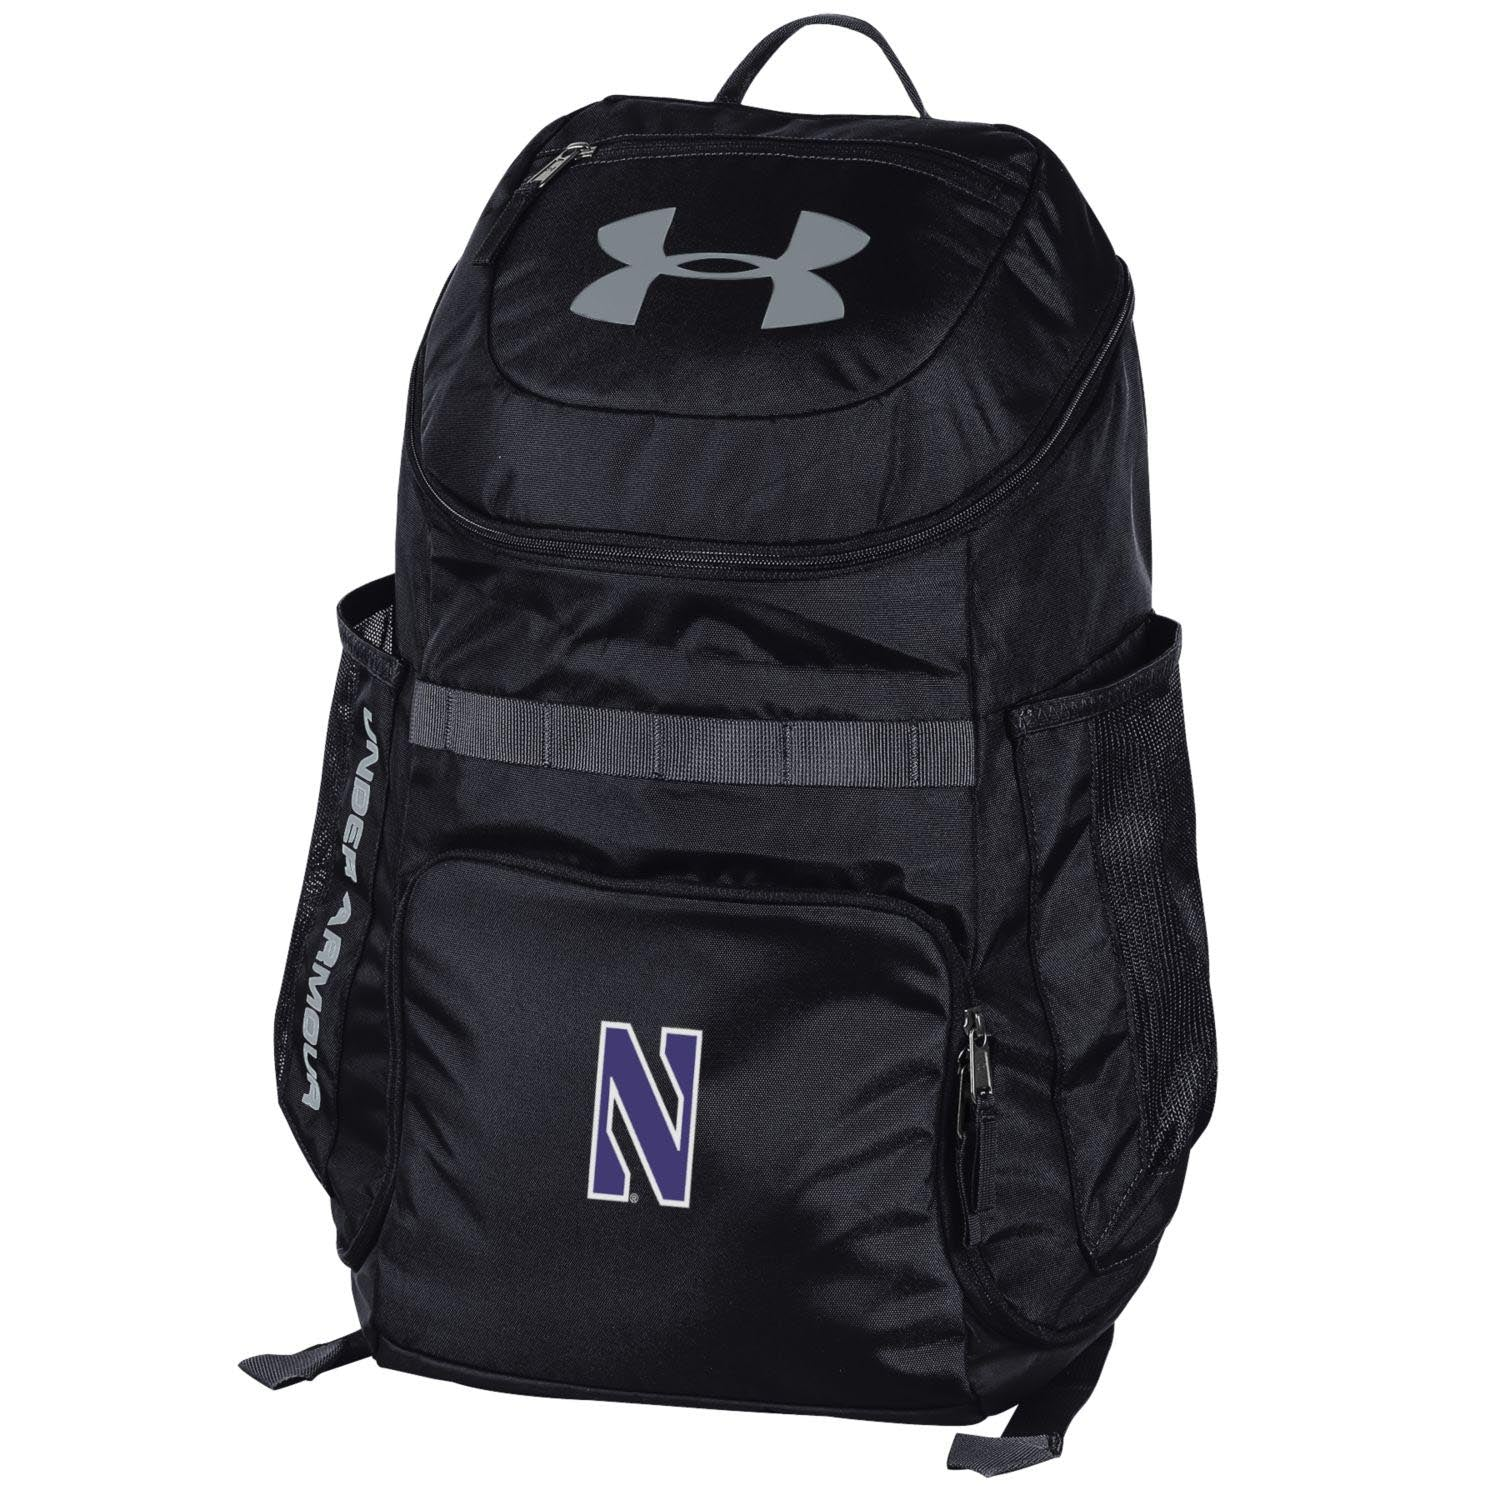 a4ca31bacdad Northwestern Wildcats Under Armour® Undeniable Backpack – Northwestern  Official Store